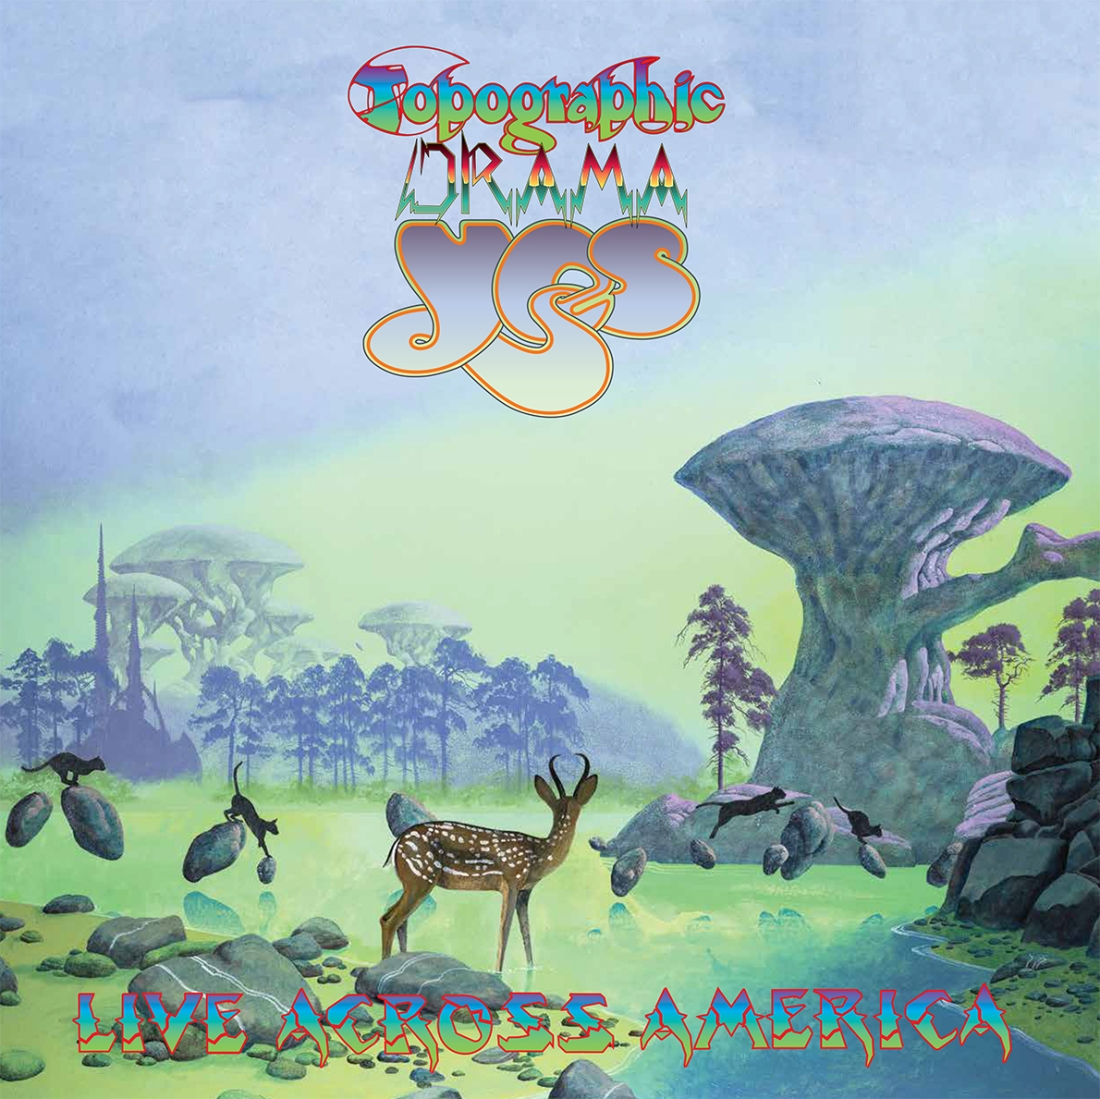 Yes Topographic Drama: Live Across America album cover by Roger Dean. Package Design by Gottlieb Bros.